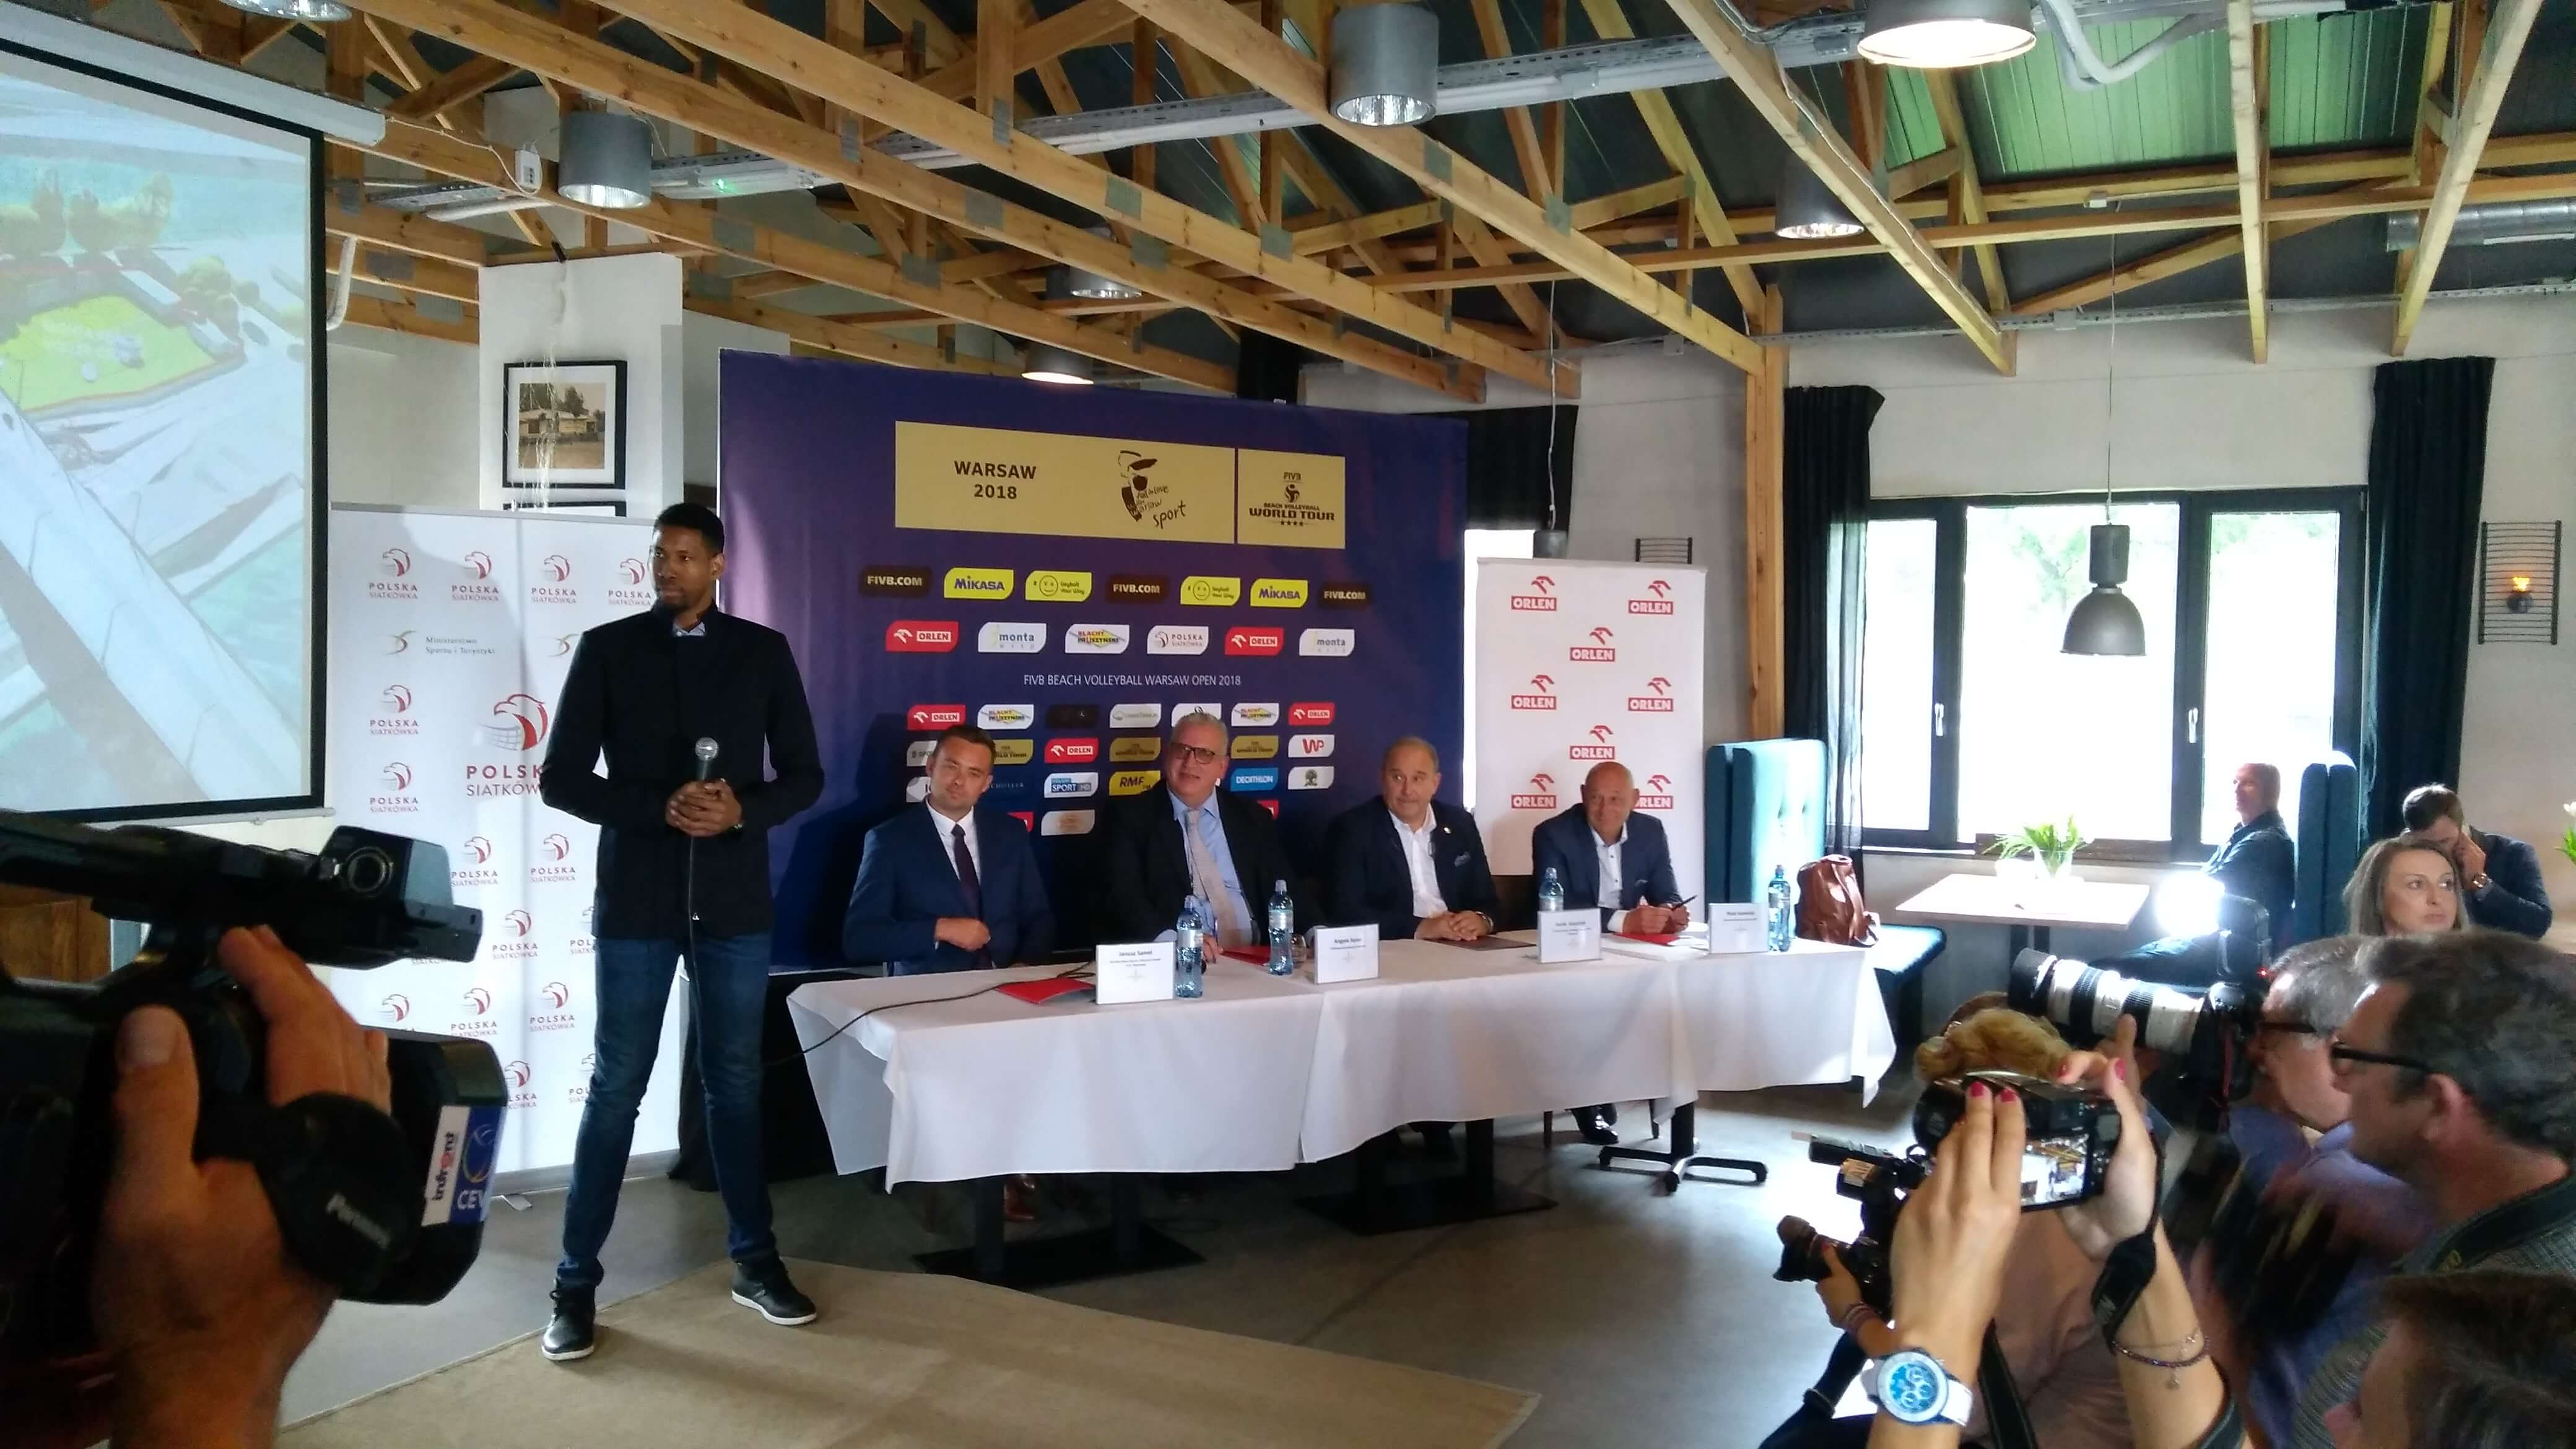 World Tour Warsaw 2018 - press conference and special guest